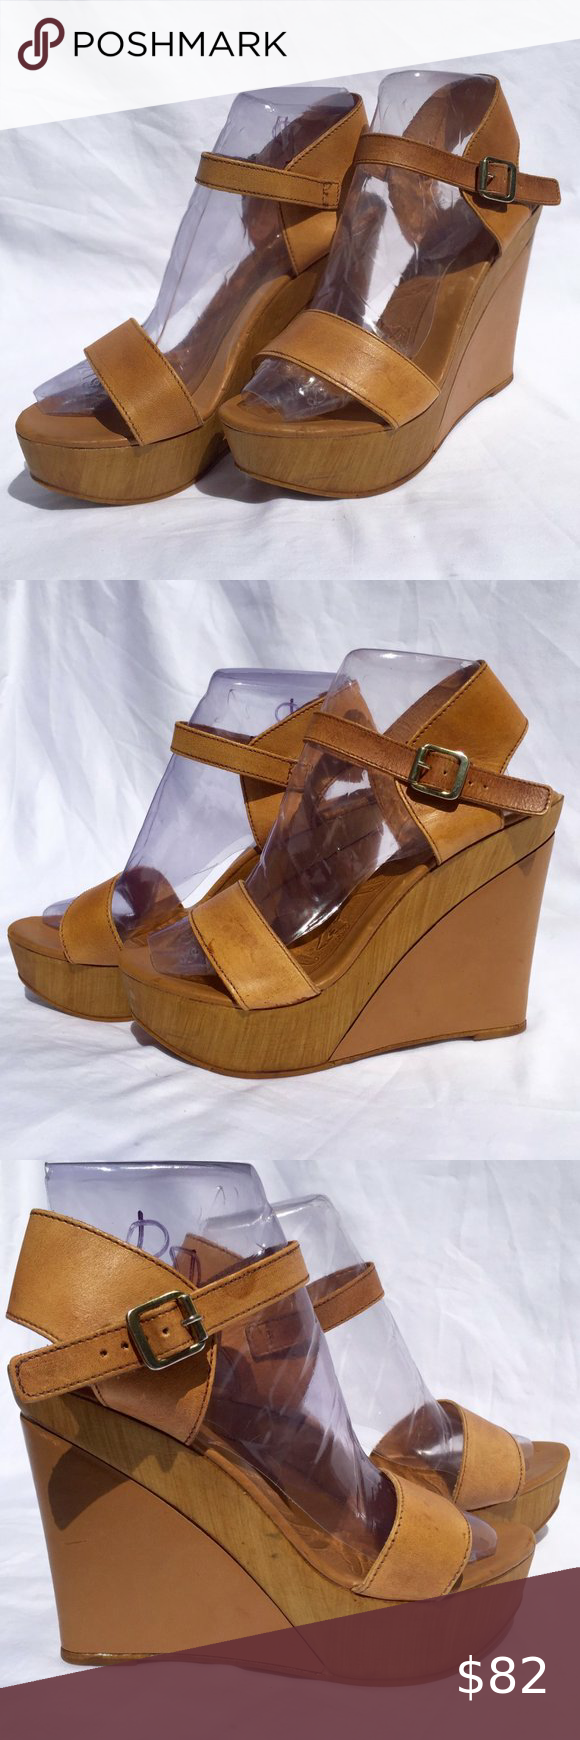 Kurt Geiger  KURT GEIGER Carvela Wedge Sandals SZ. KURT GEIGER Carvela wedge sandals in a tan leather with ankle strap buckle closure, 5 inch heel. SZ. 8 *Note one shoe seems a tad darker to me on the foot strap ??? Kurt Geiger Shoes Wedges